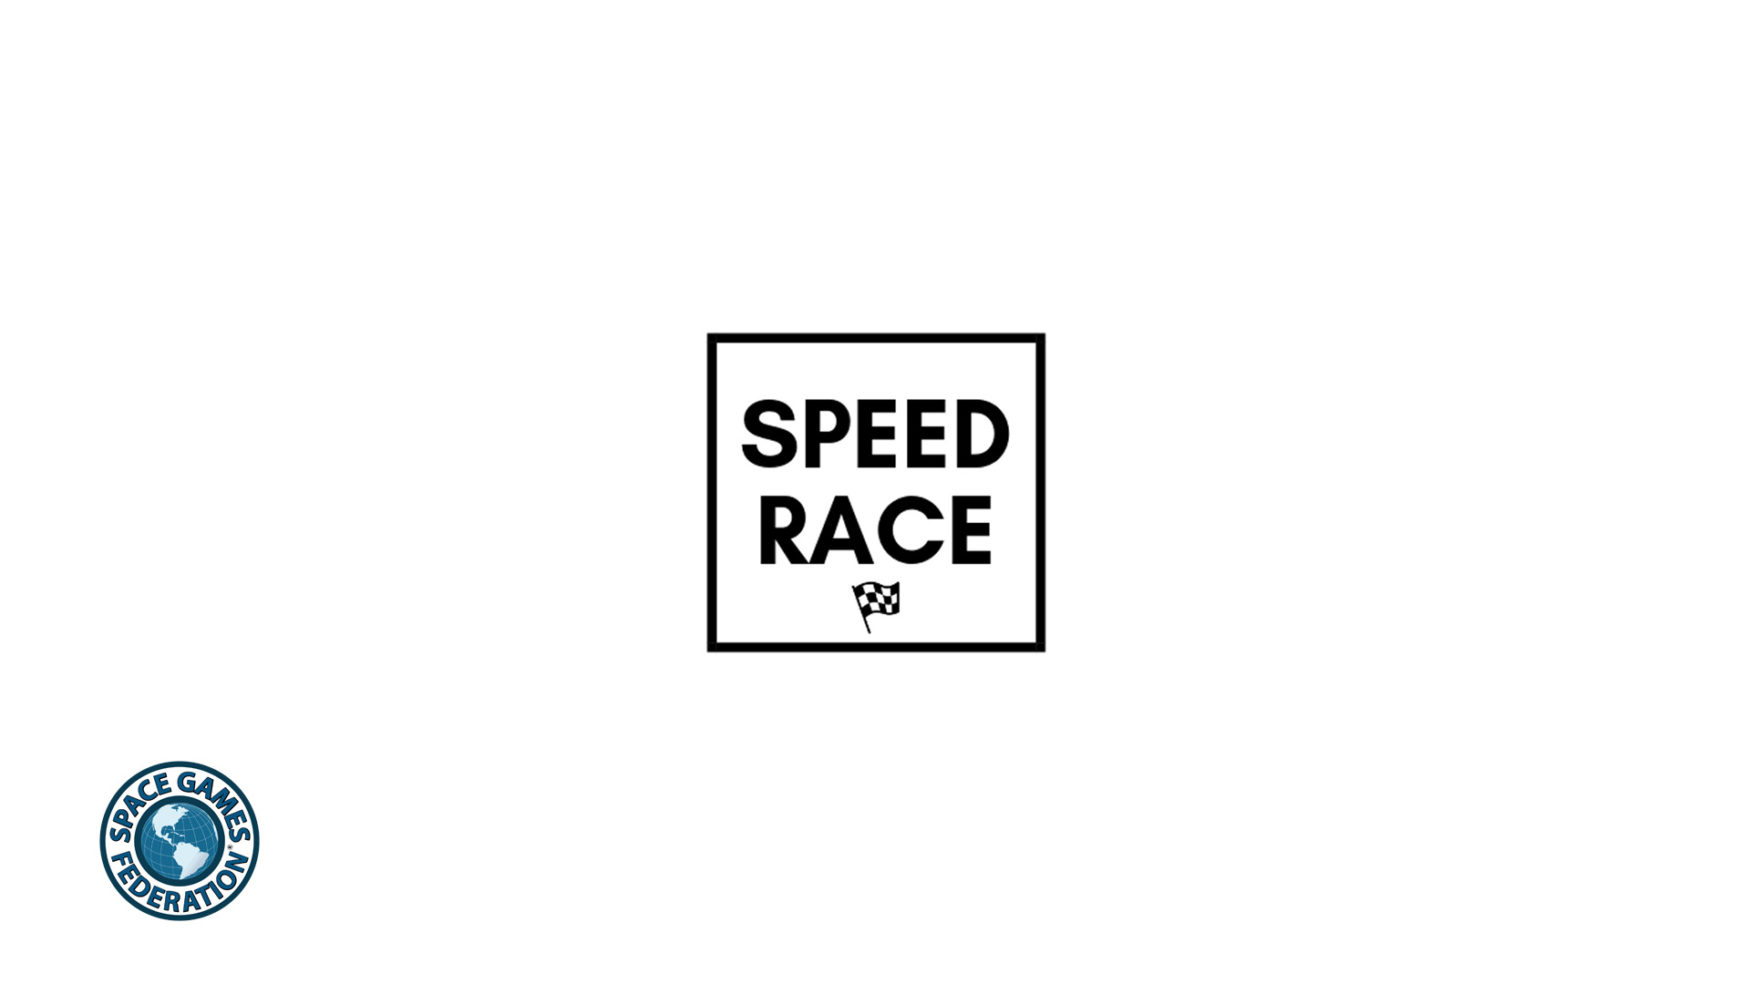 12). Speed Race